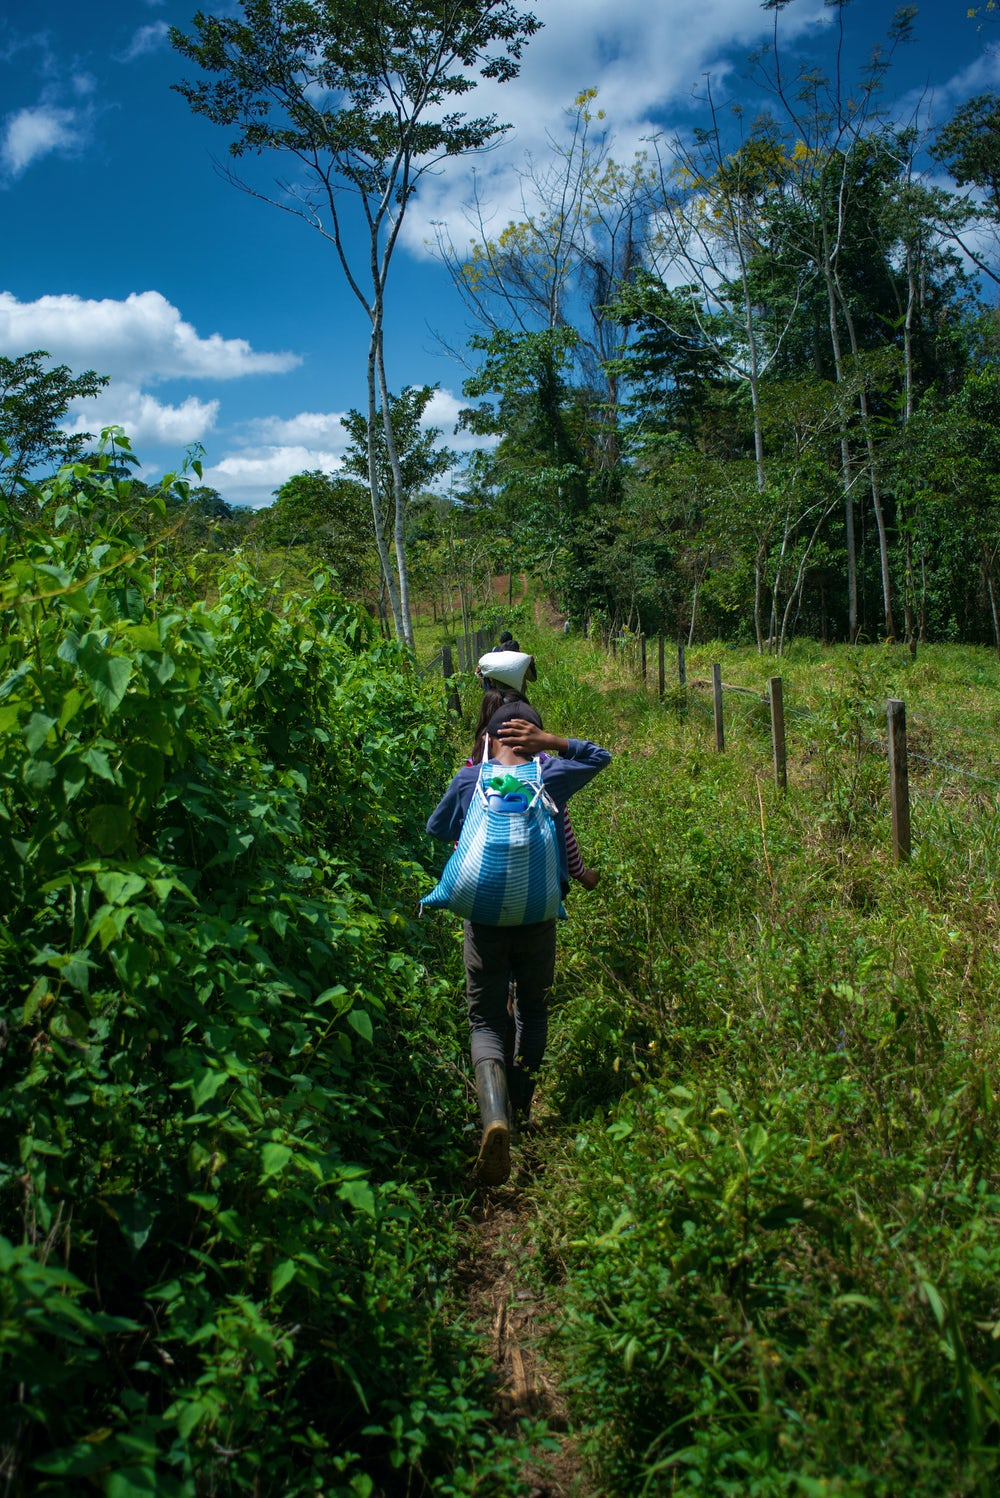 A young cardamom farmer walks down a path in a cloud forest, carrying a sack of spice on her back.